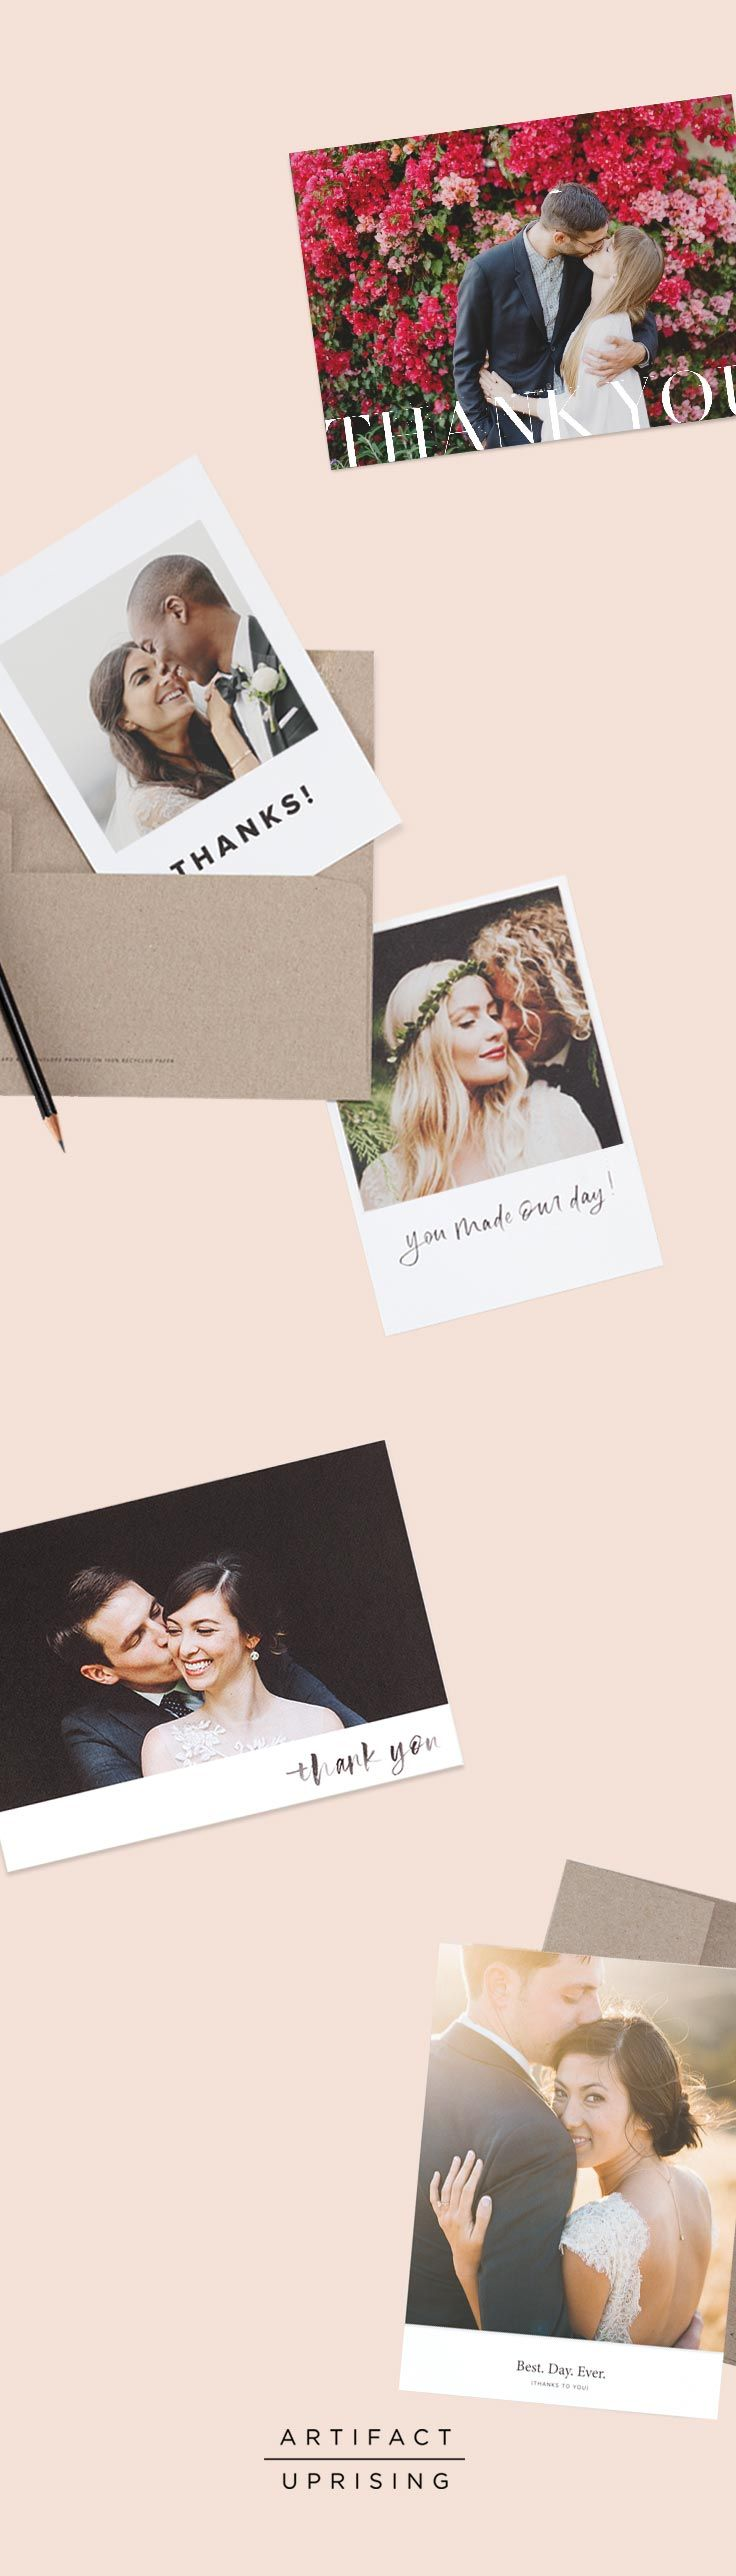 Let's be honest: It was the Best. Day. Ever. Let your guests know they made your day with these premium quality photo cards from @artifactuprsng – printed on 100% recycled paper with classic and modern designs to match. The hardest part? Picking your favorite photo.